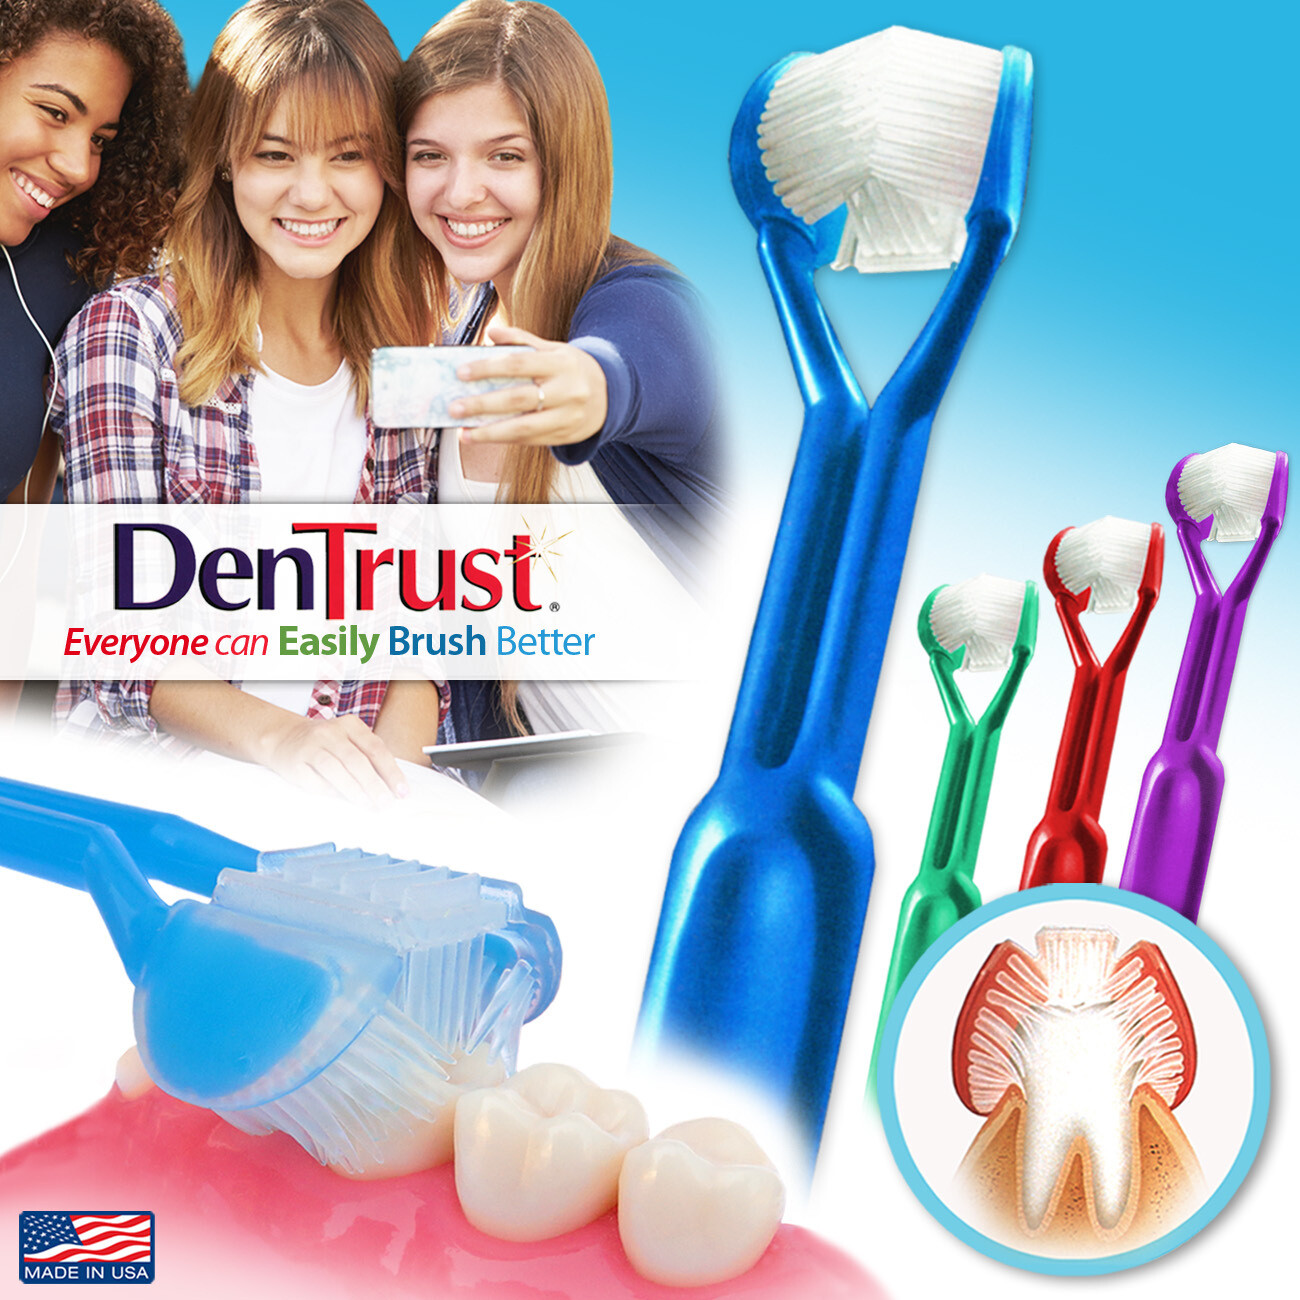 4-PK | DenTrust | The Only Child-Safe 3-SIDED Toothbrush |  Children Can Easily Brush Better | Clinically Proven, Fast, Easy & More Effective for Youth Teens Children Special Needs Autism Braces | USA